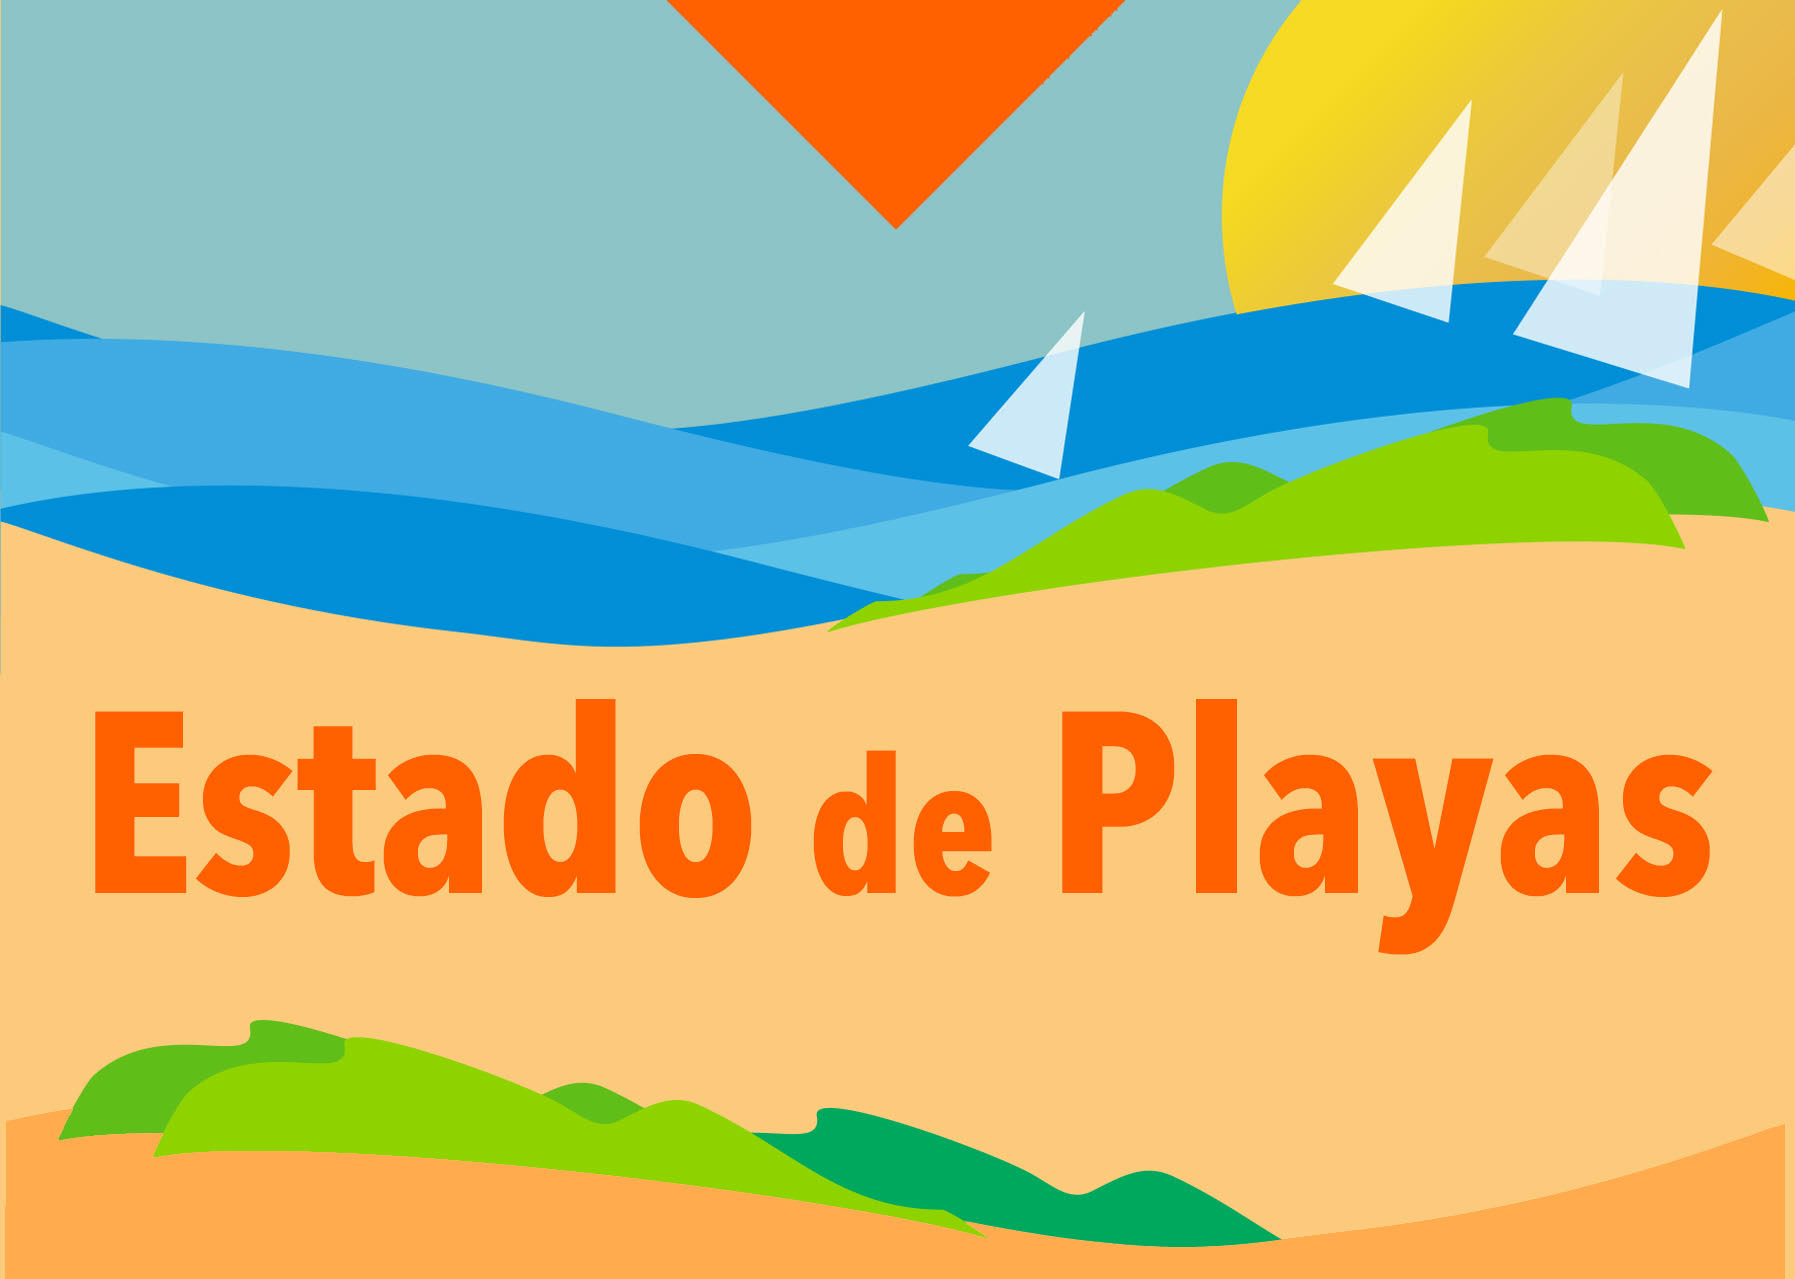 Estado Playas